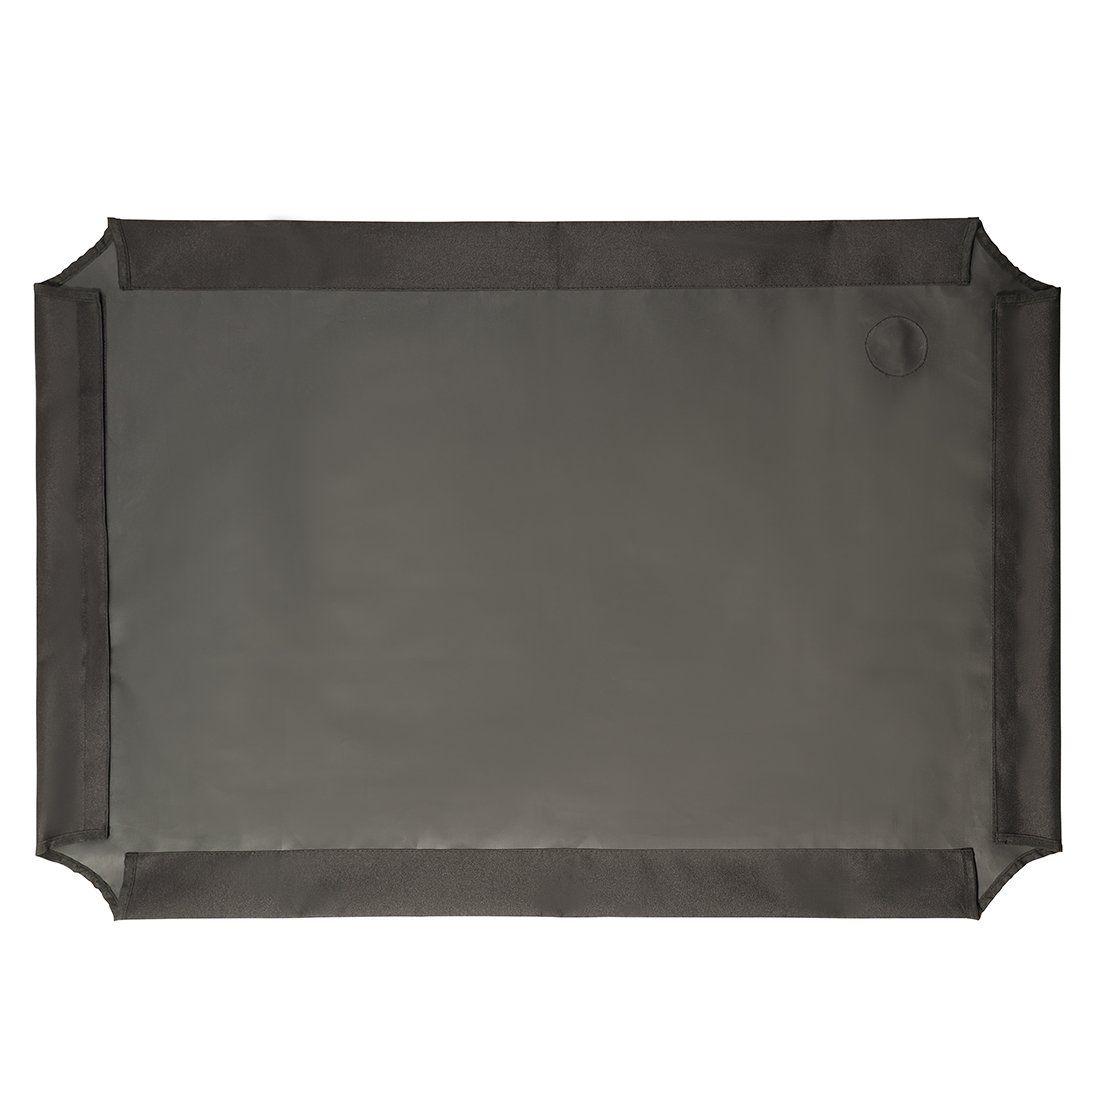 Veehoo Elevated Dog Bed Replacement Cover Washable Pet Cot Bed Mat Large Black 30x42 Click Image To Review More Details I Dog Bed Elevated Dog Bed Bed Mats